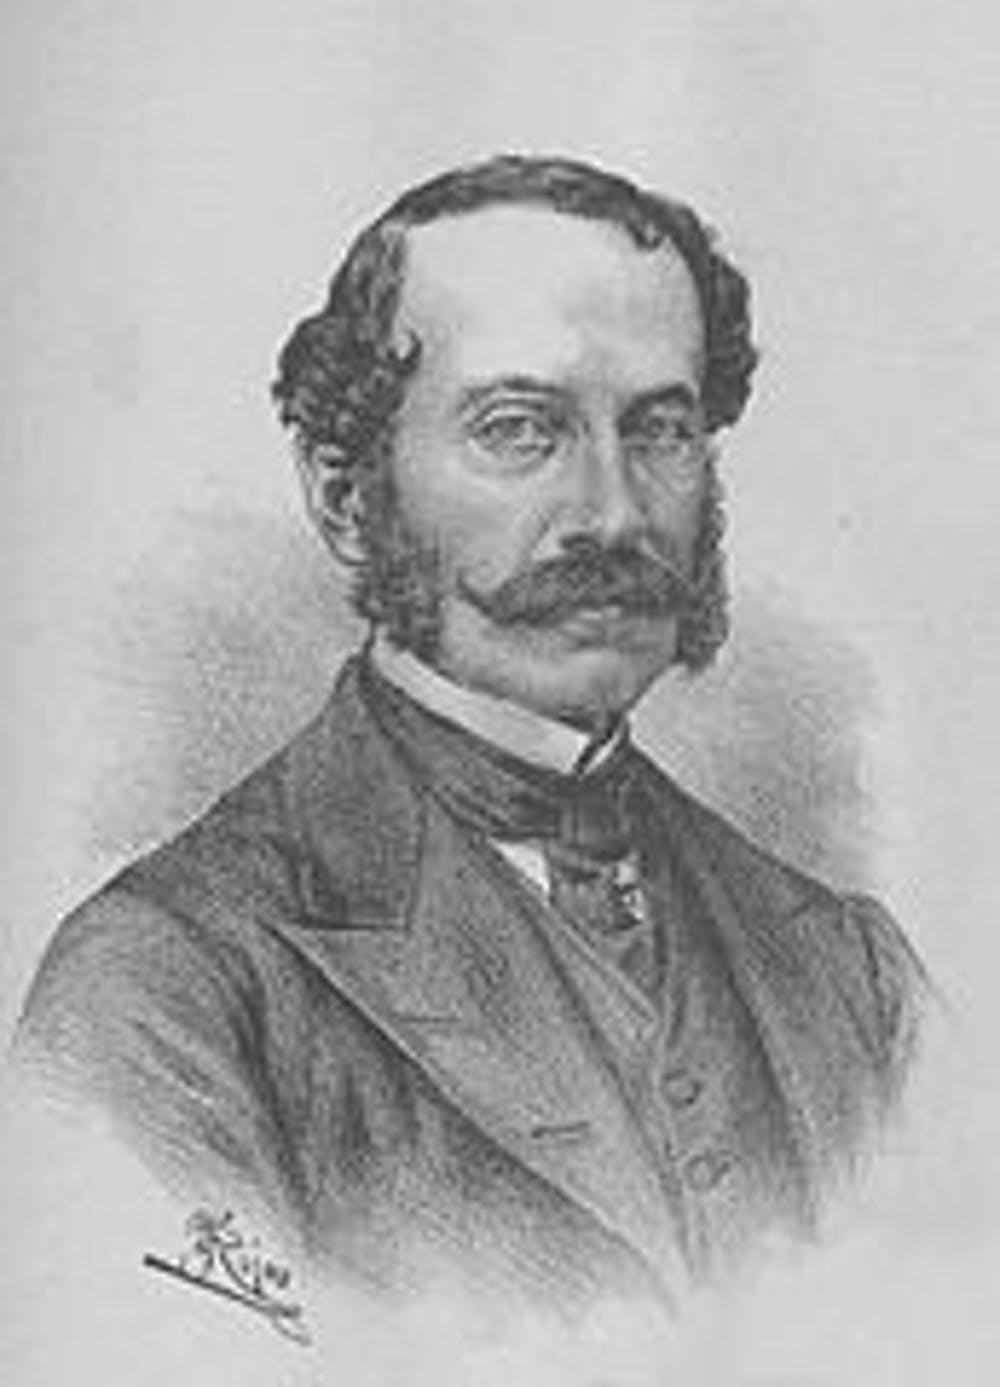 <p>Urmeneta earned an honorary master's degree and honorary doctor of law degree from the University in 1851 and 1859, respectively.</p>